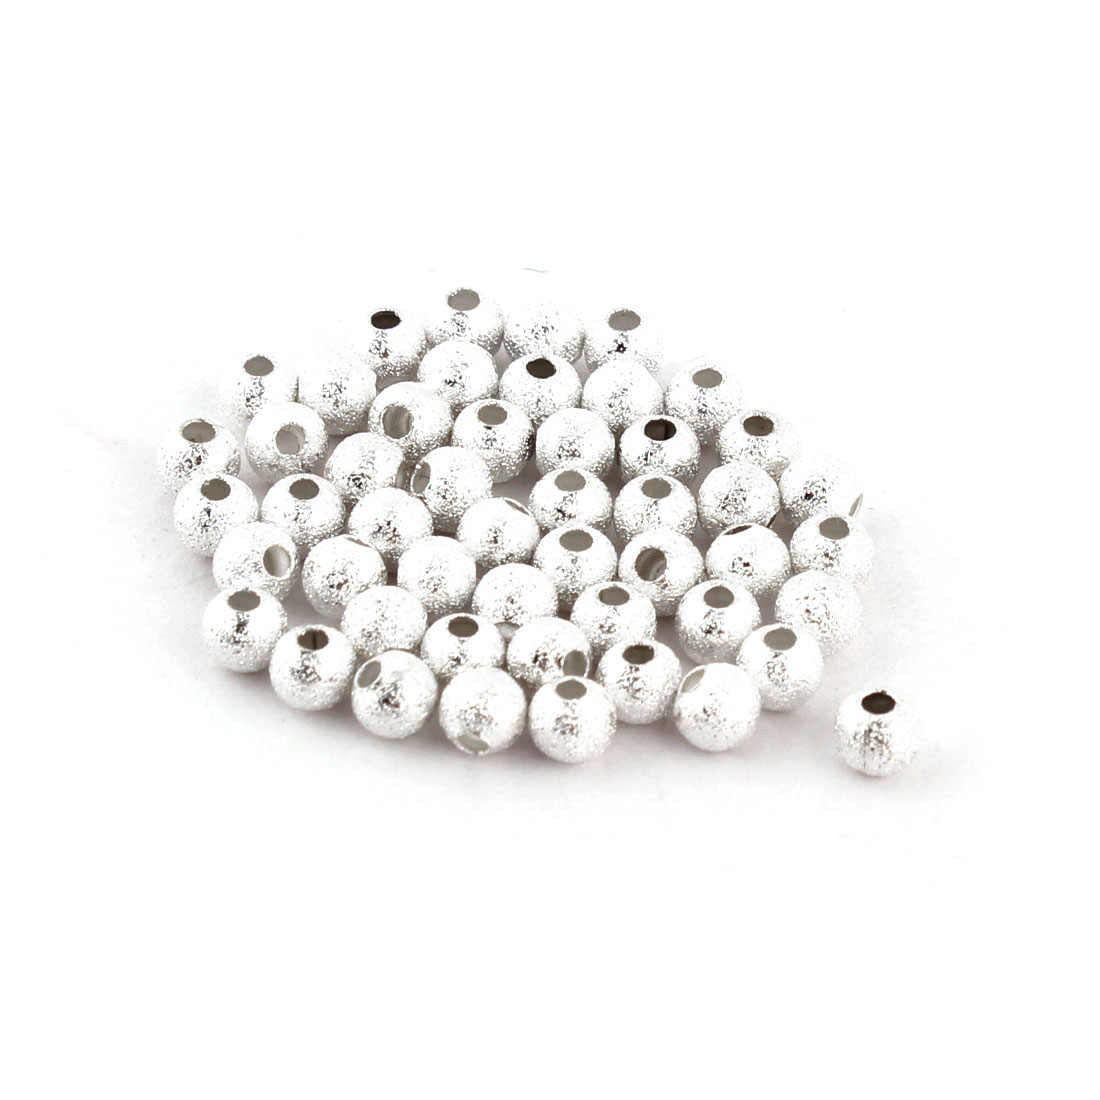 Lady Plastic DIY Necklace Bracelet Making Beads 4mm Diameter 50pcs